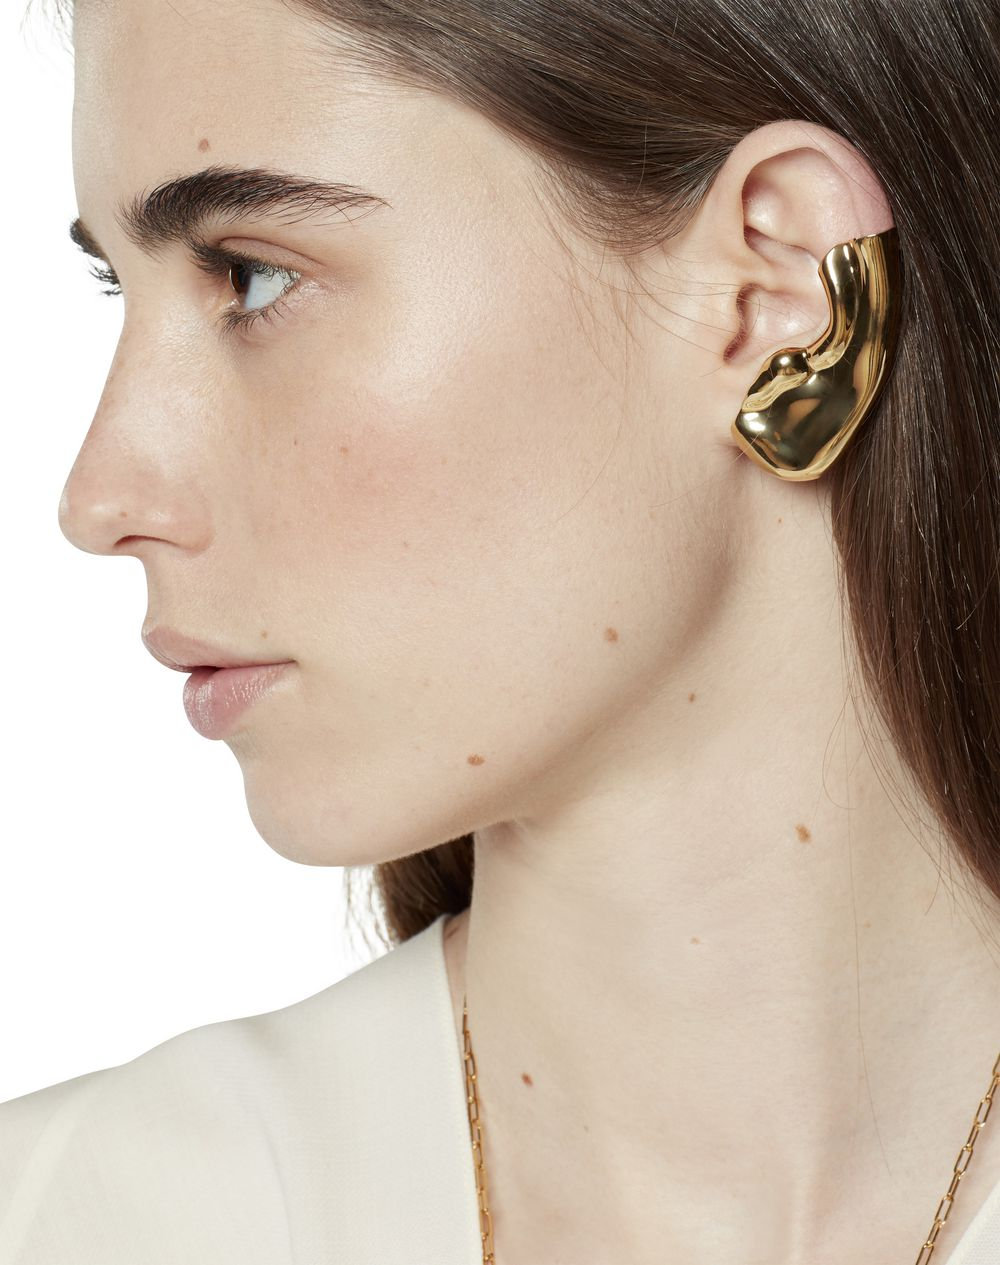 RIGHT-SIDE SINGLE EARRING - Lanvin